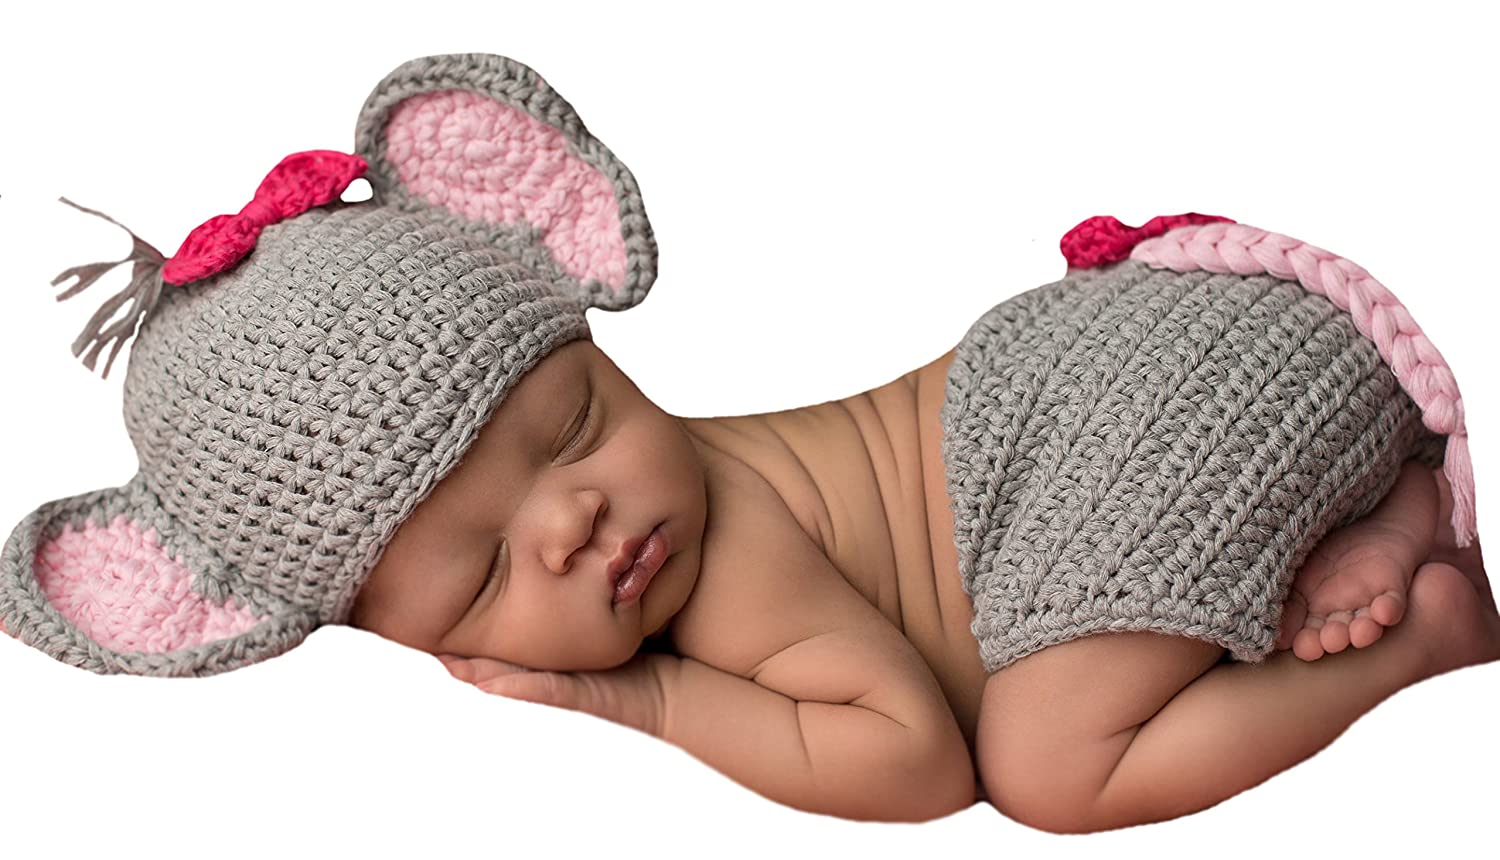 90c70e1a111 Amazon.com  Melondipity s Baby Elephant and Bitty Bow Hat and Diaper Cover  Set for Newborn Girls  Clothing